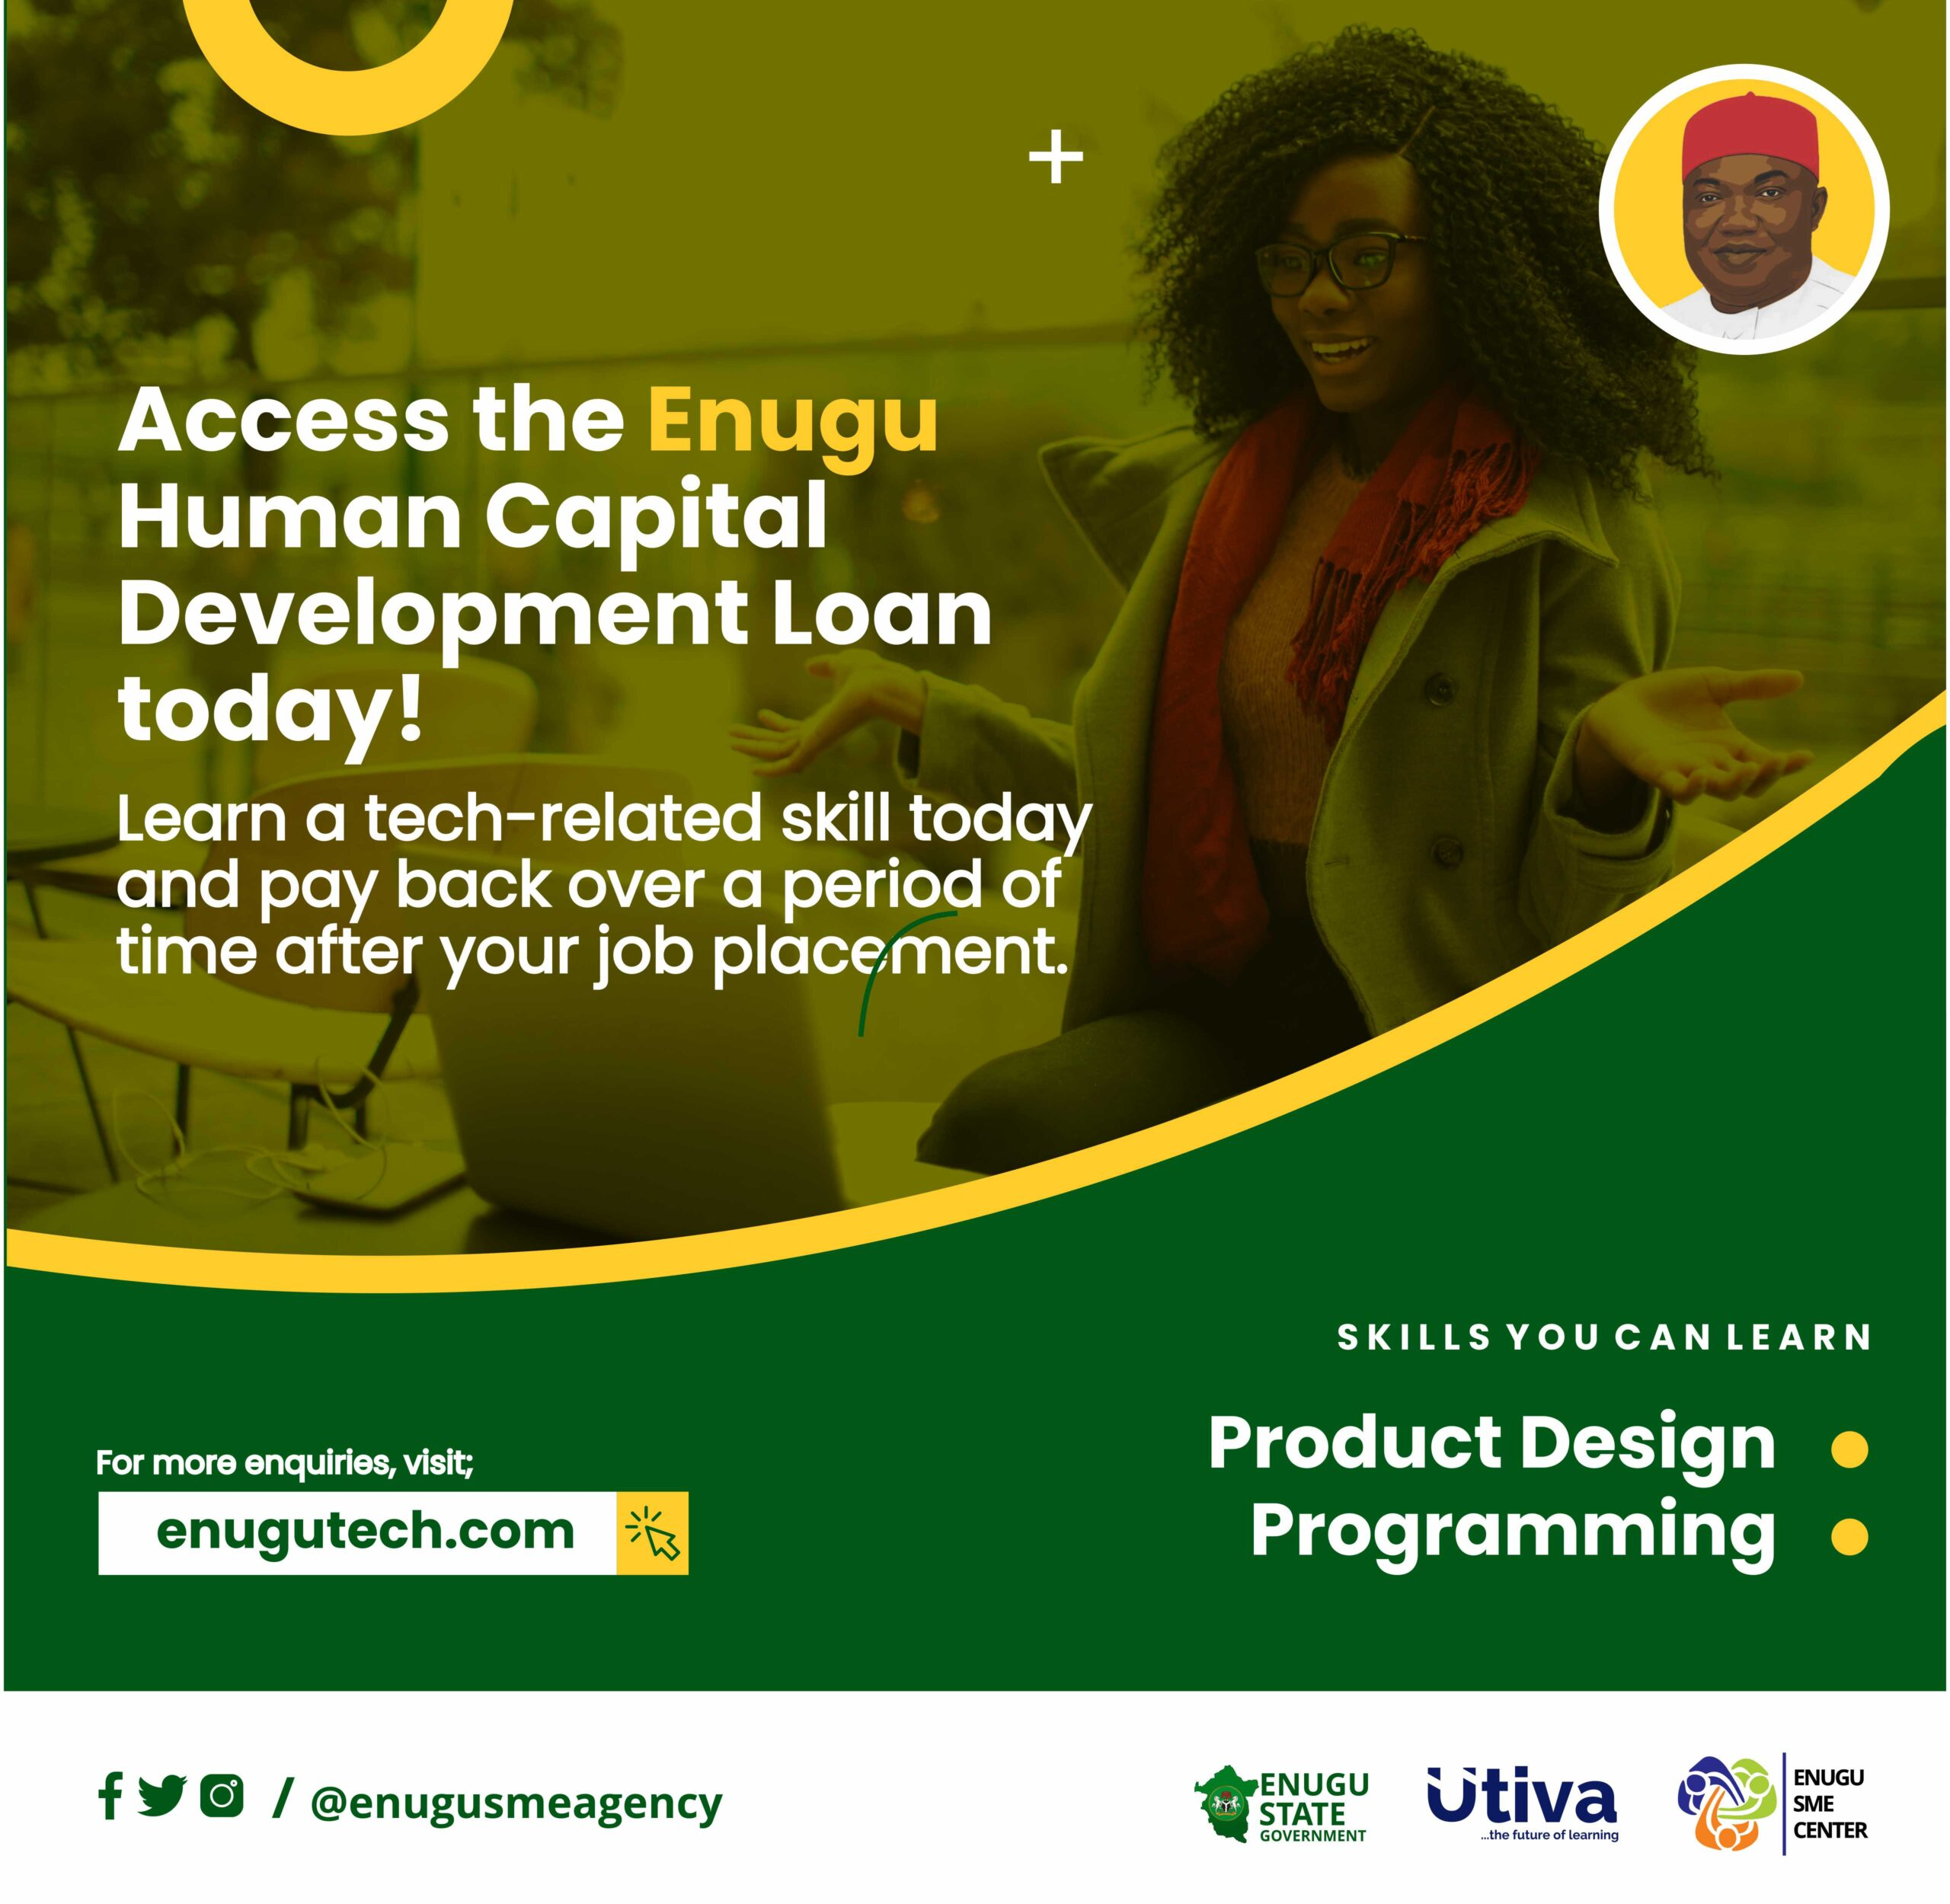 Enugusmeagency in partnership with Utiva introduces the 2nd batch of the Enugu Tech Program